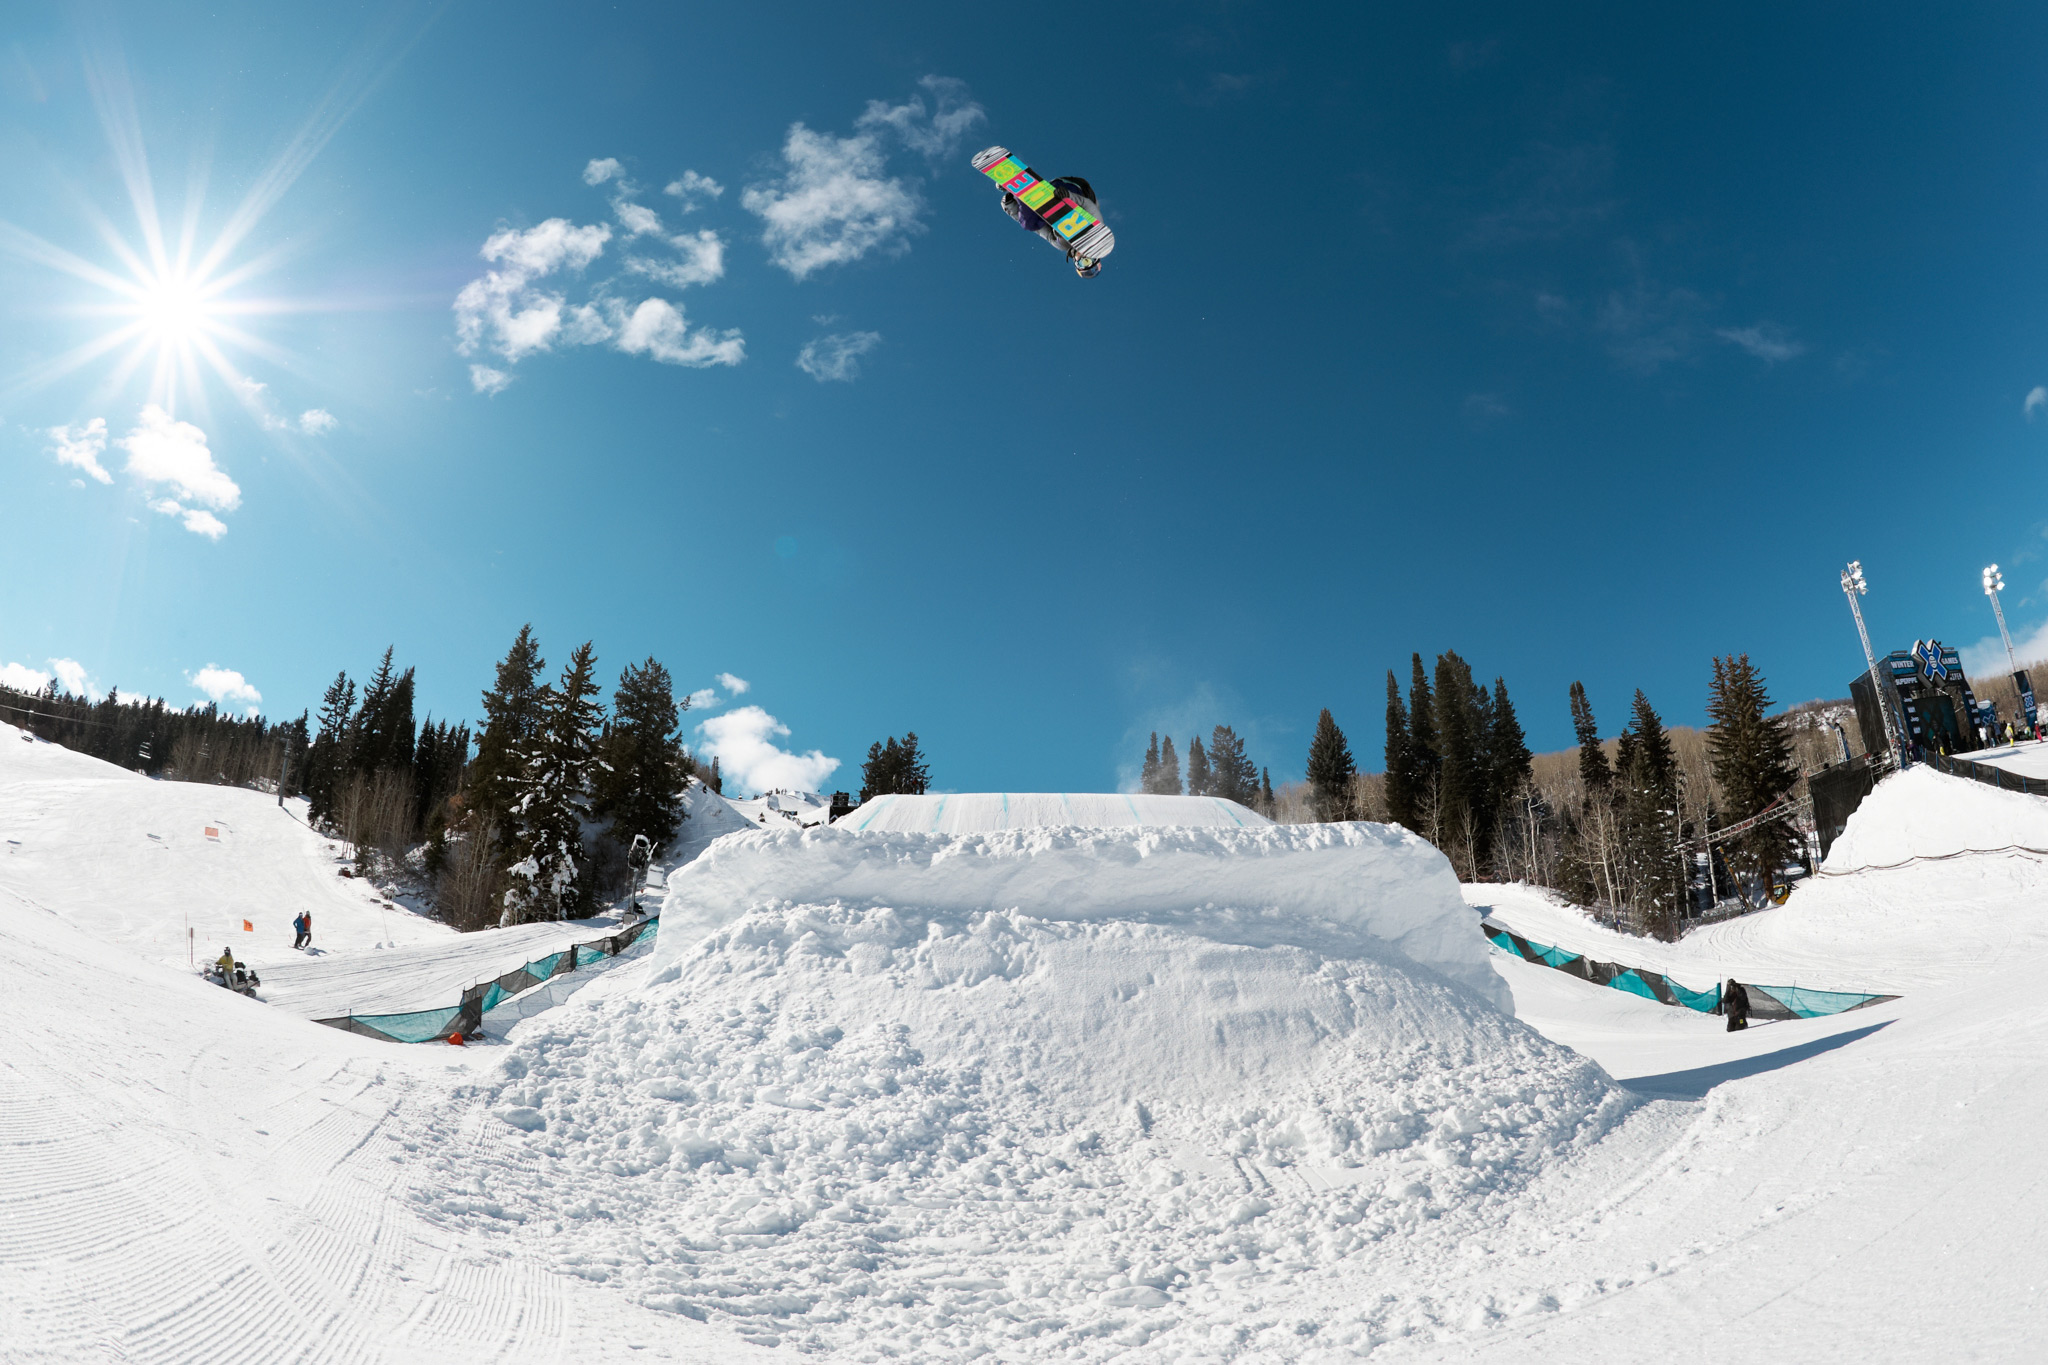 Seb Toots showed up to his first X Games in 2011 and became the second rookie in history to win Slopestyle gold. But before that, he posted the highest score ever recorded in a qualifying run. Don't count Toutant out for future gold. He really is just that good.